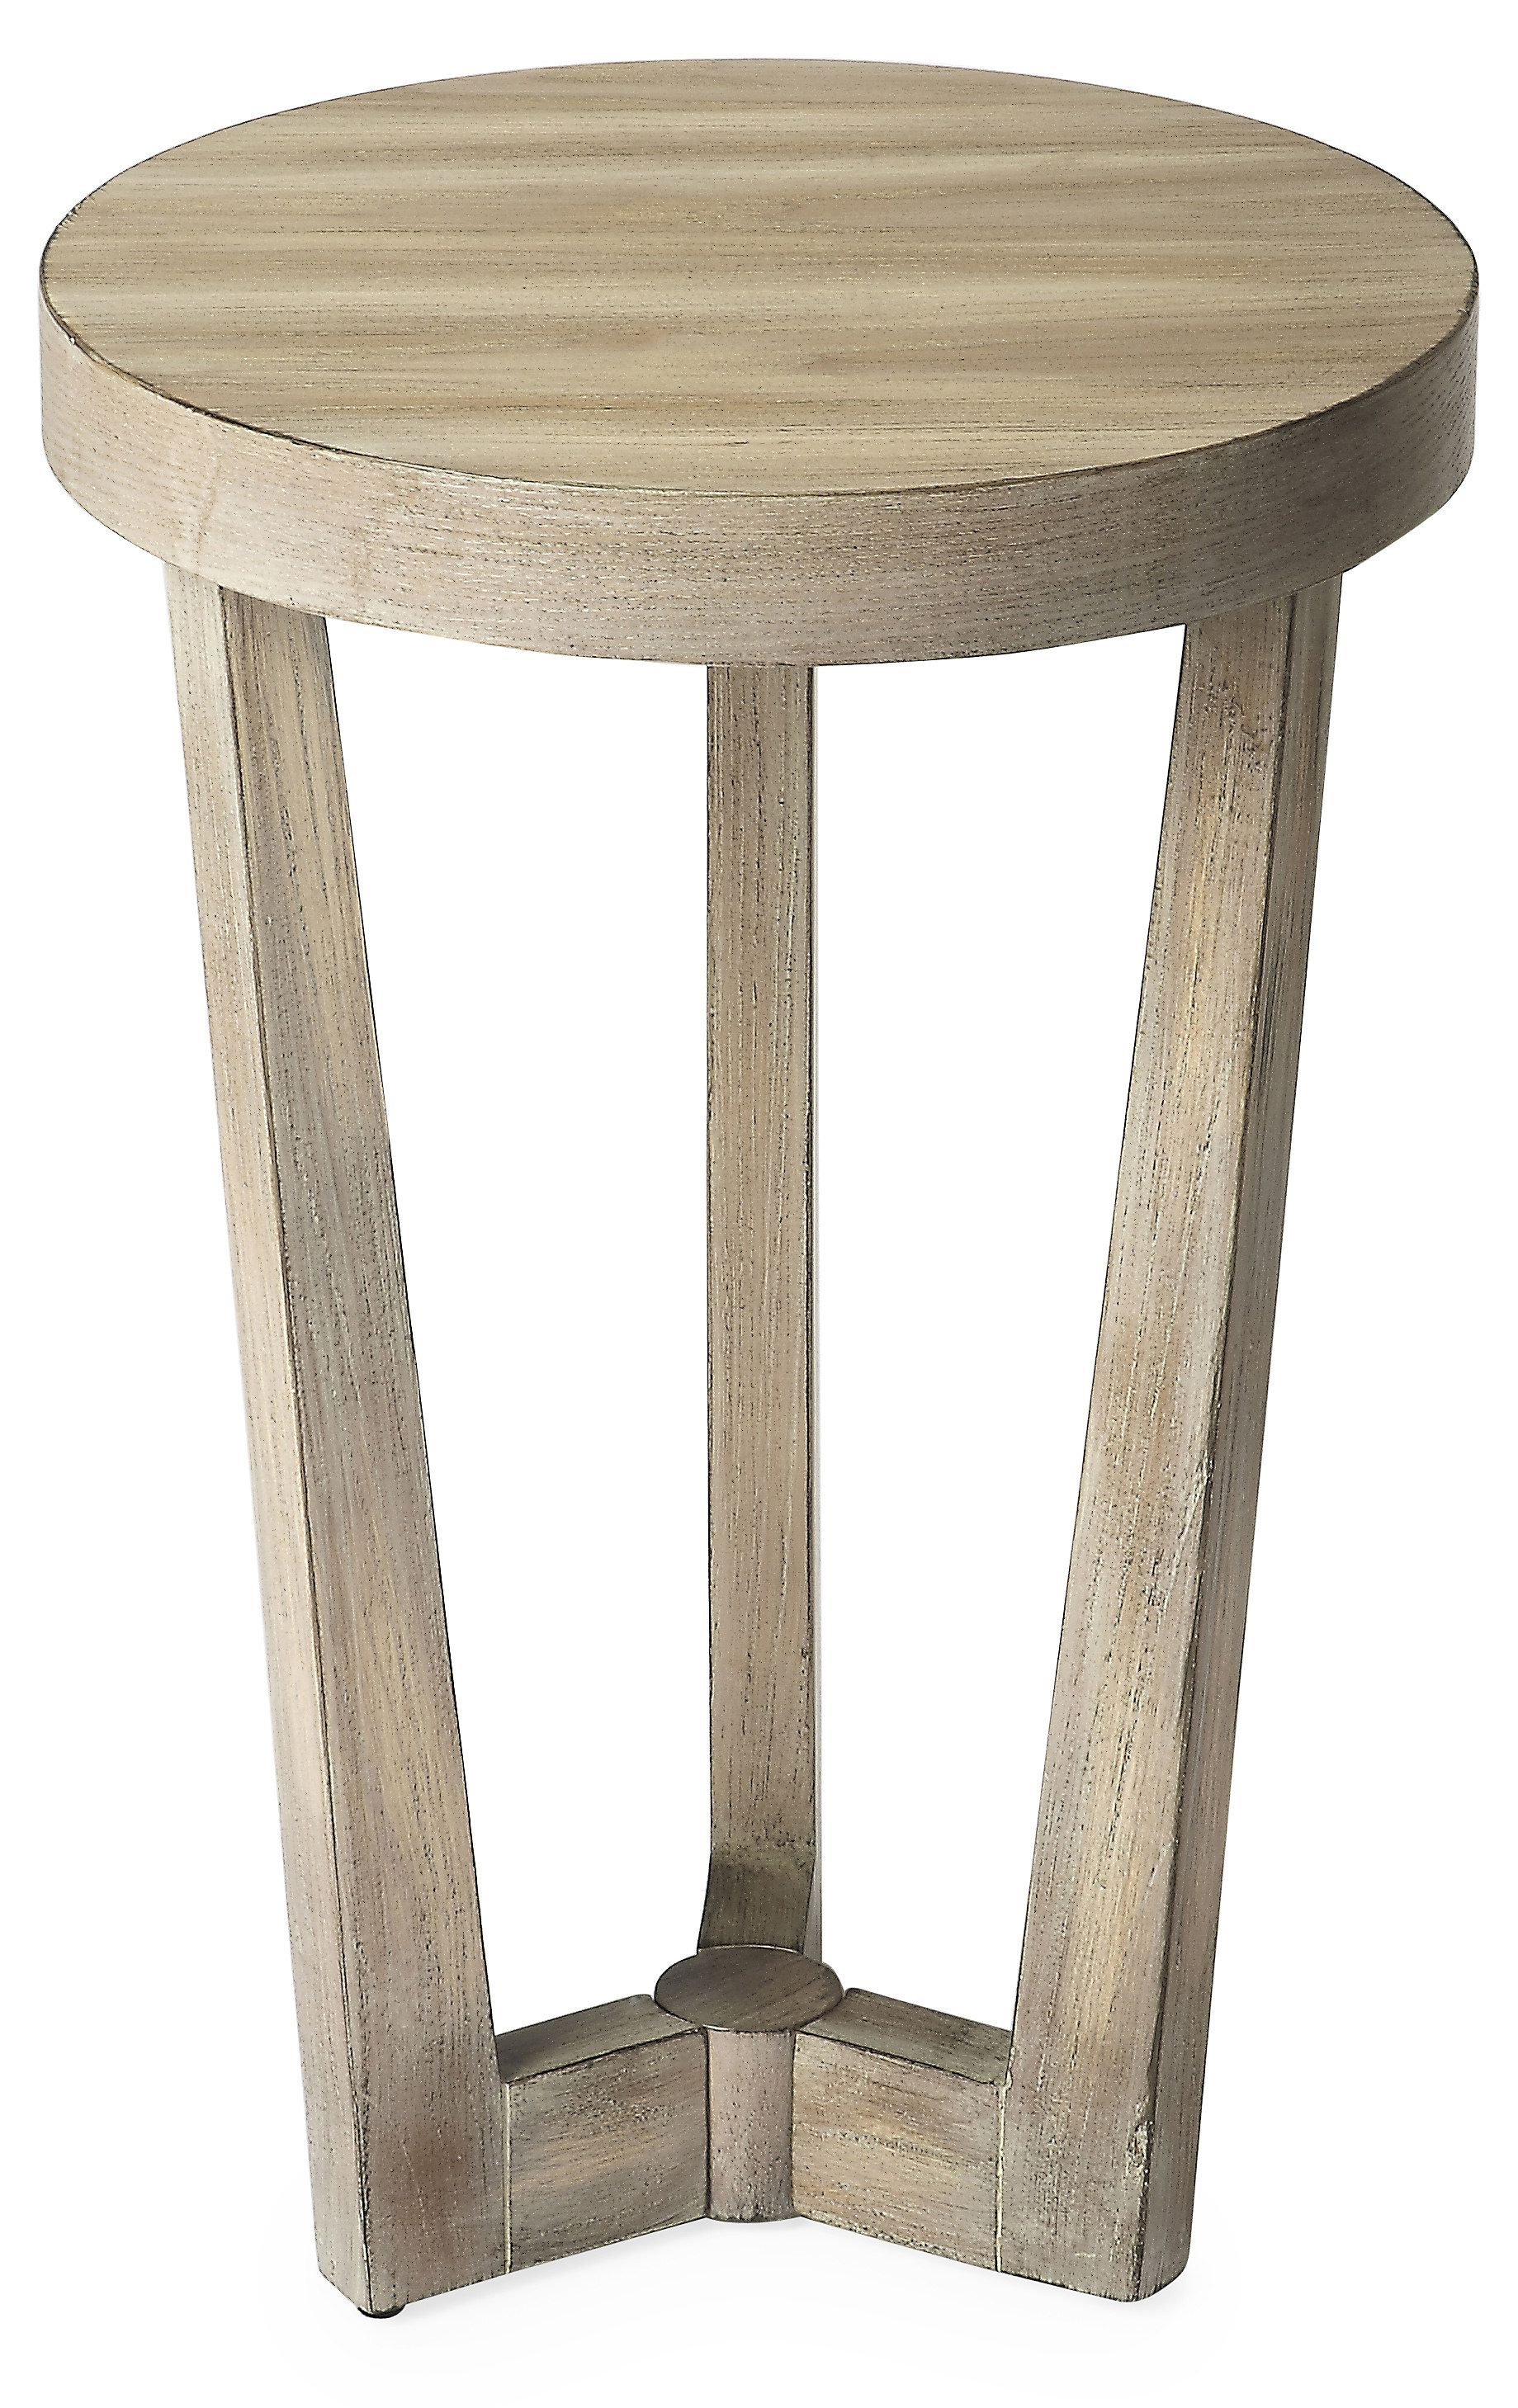 this versatile side table boasts sleek round top and airy open distressed accent frame sealed natural finish complements array color schemes screw legs hardware black metal stools